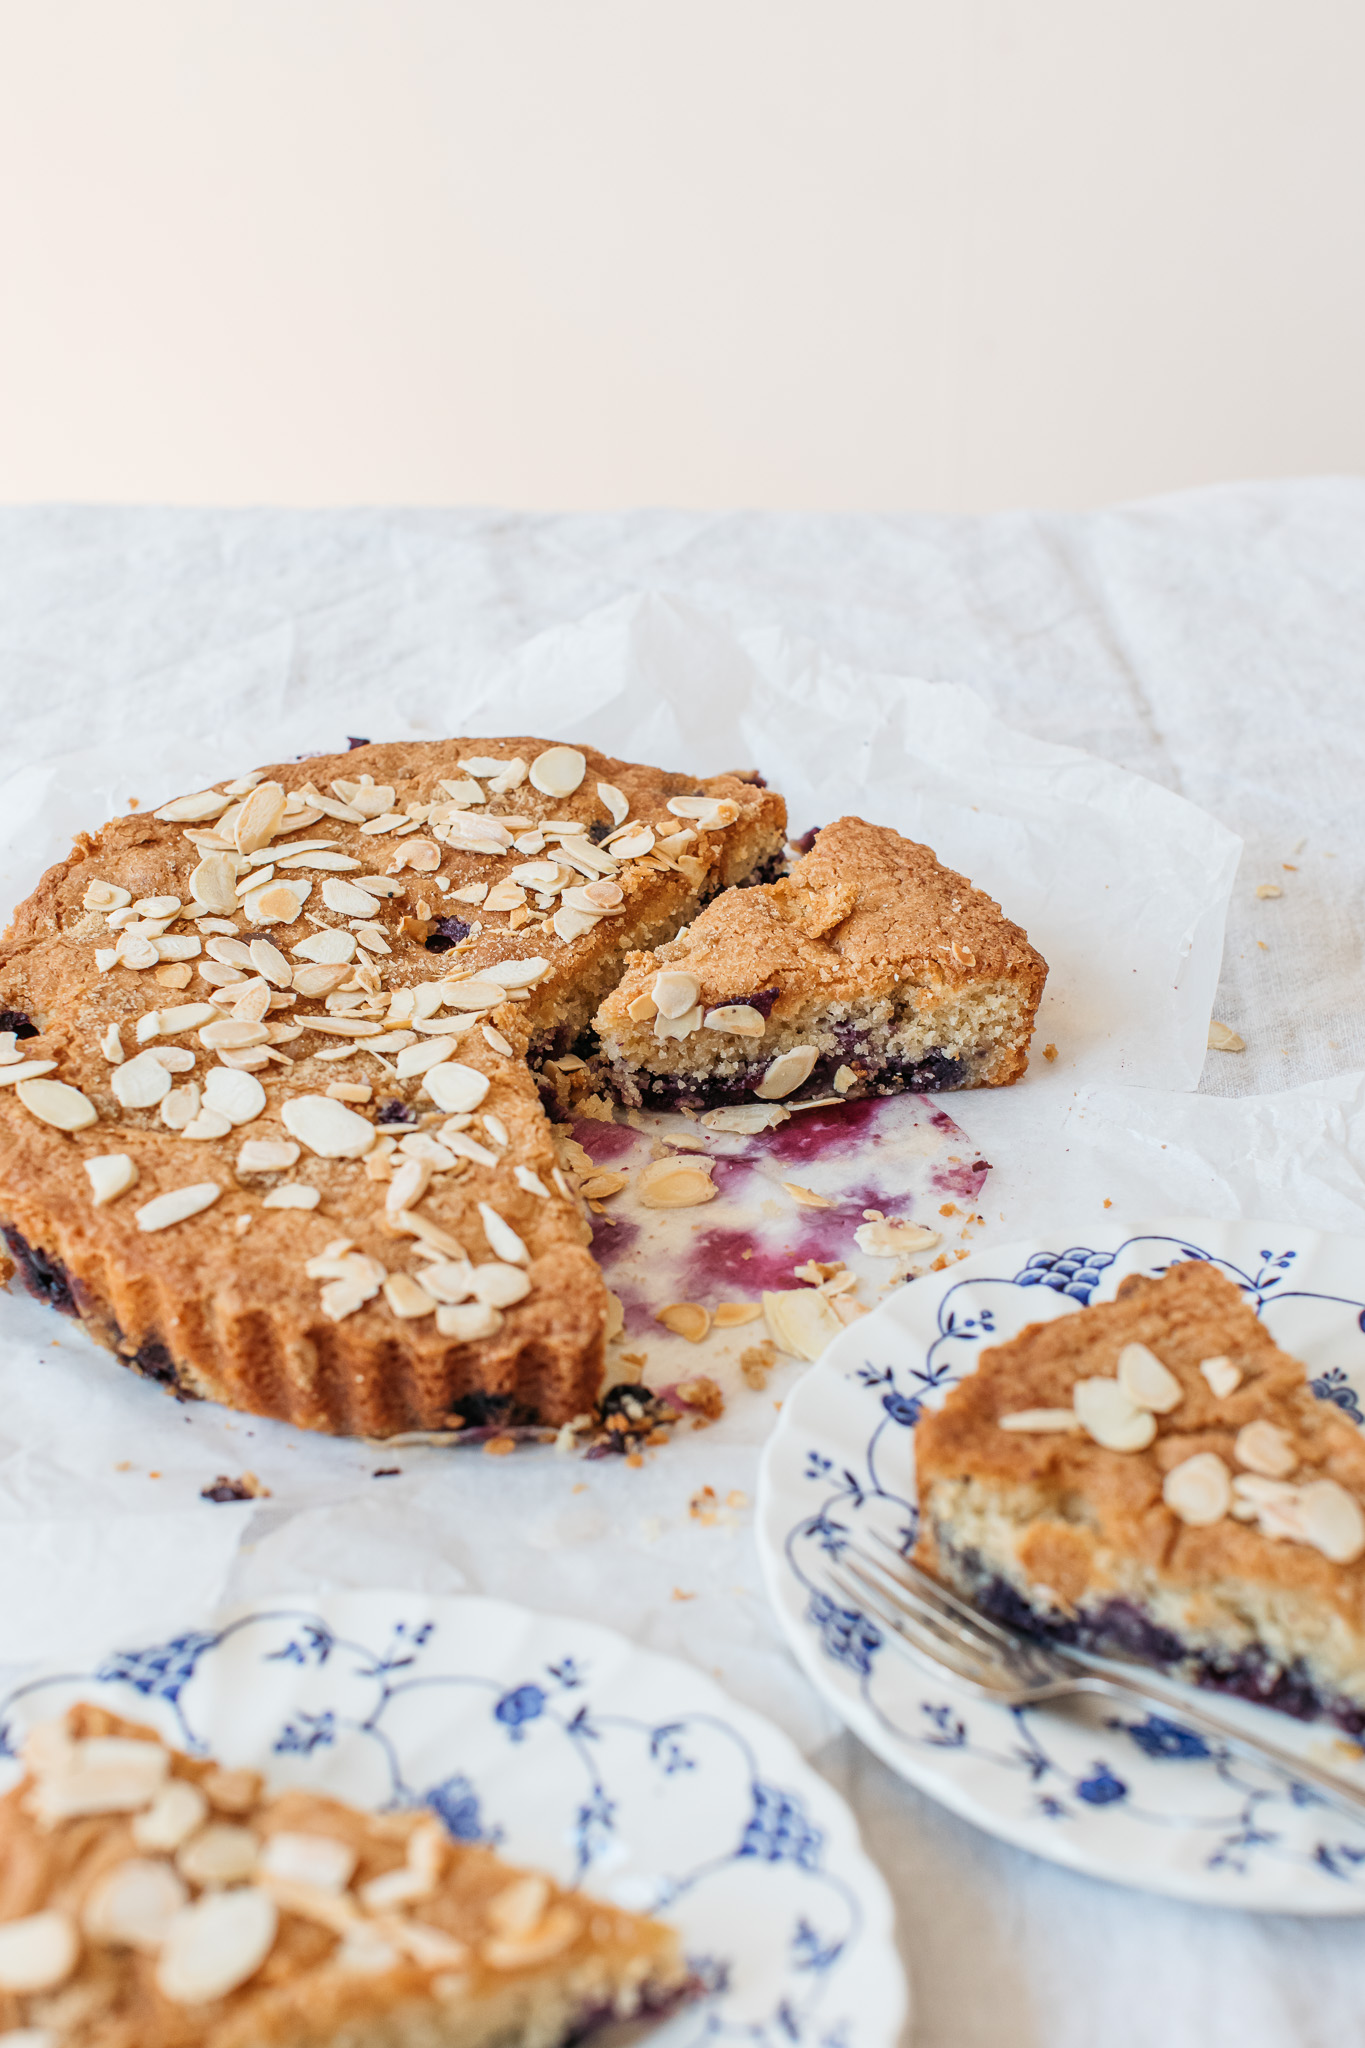 Low FODMAP blueberry and almond cake